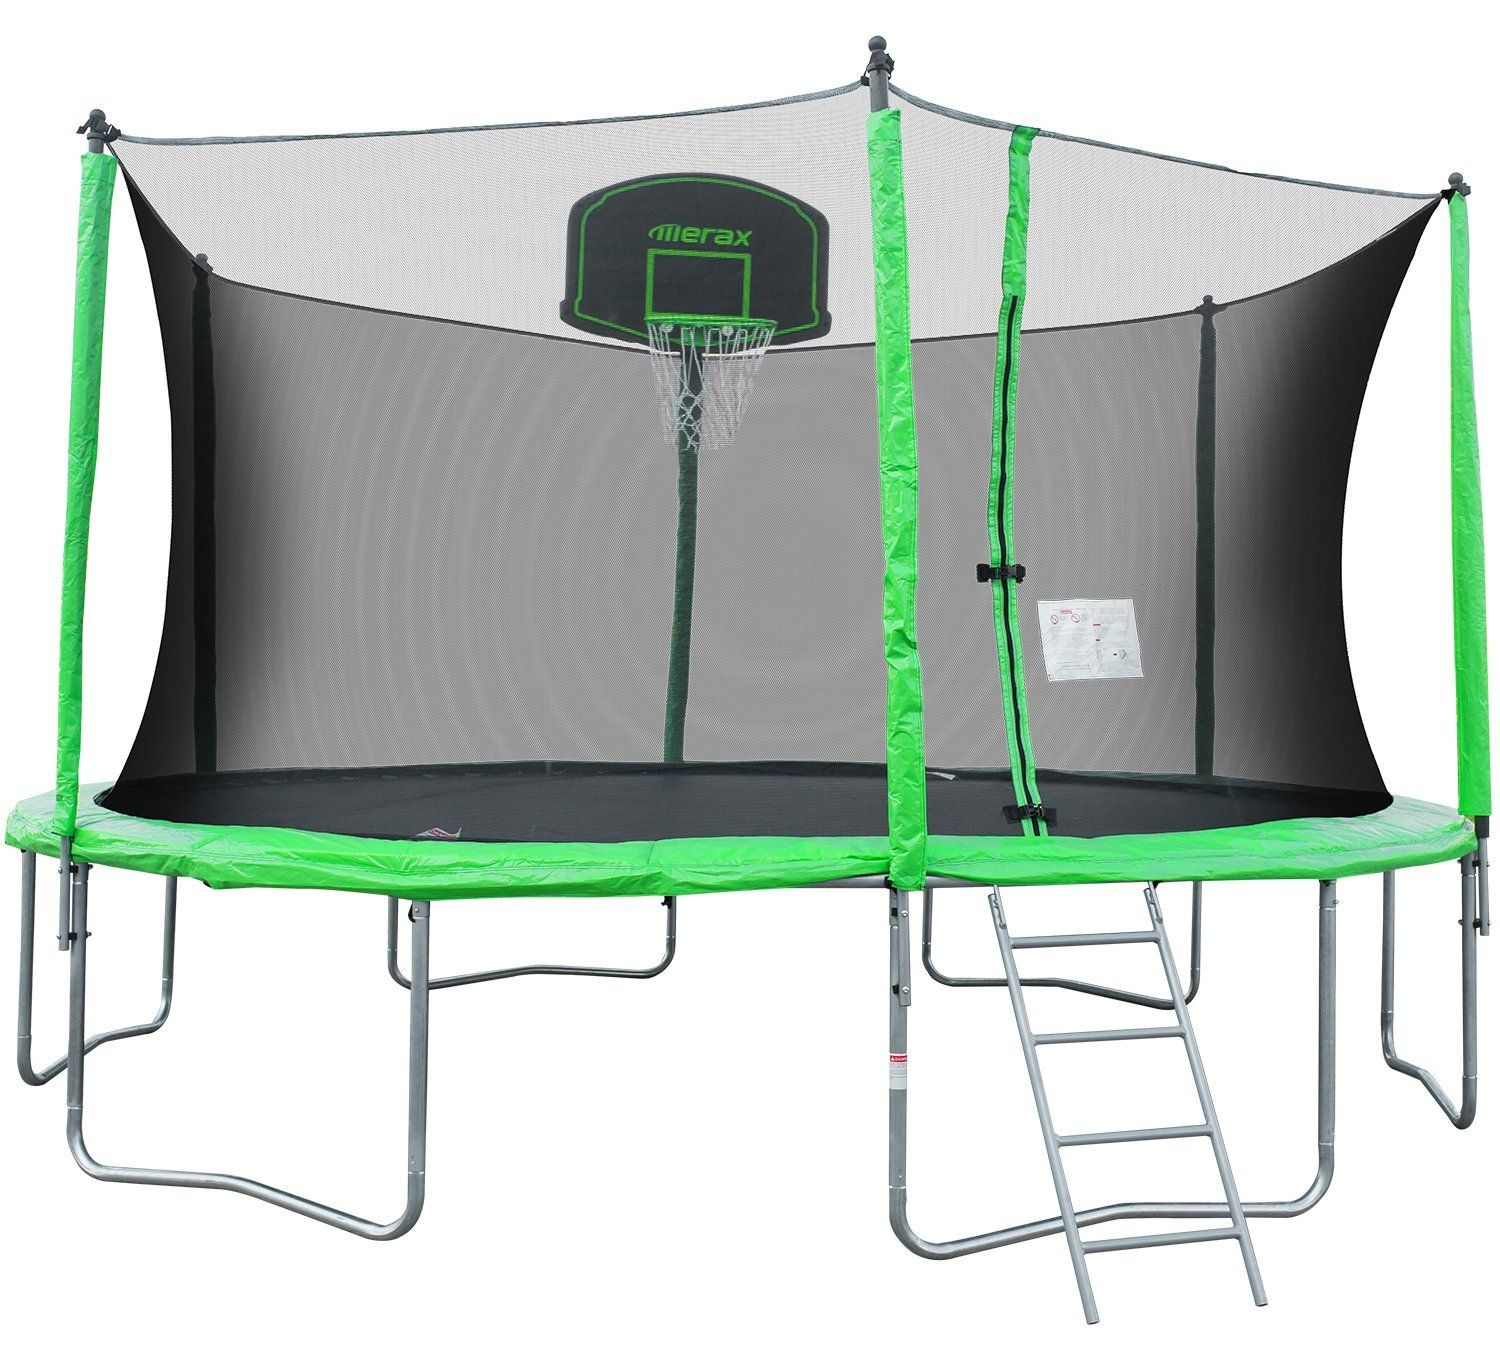 Merax 14-Feet Round Trampoline with Safety Enclosure, Basketball Hoop and Ladder